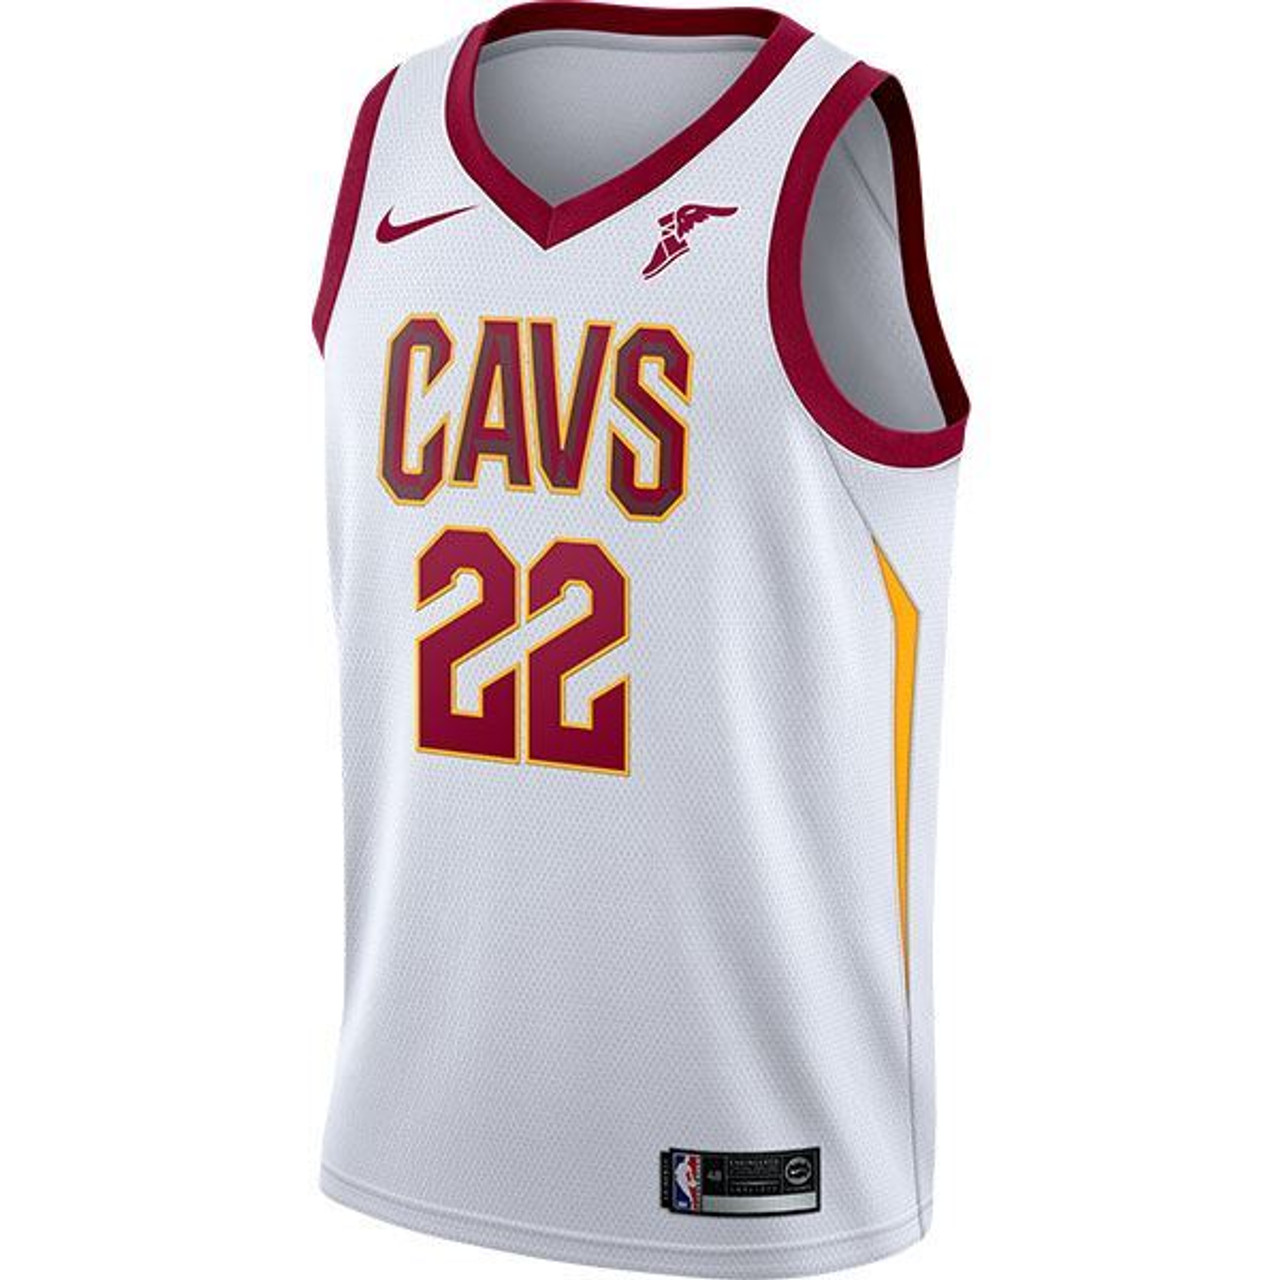 new arrive 279cb 94a8a [WHITE] Big Kids #22 Larry Nance Jr. Jersey with Wingfoot